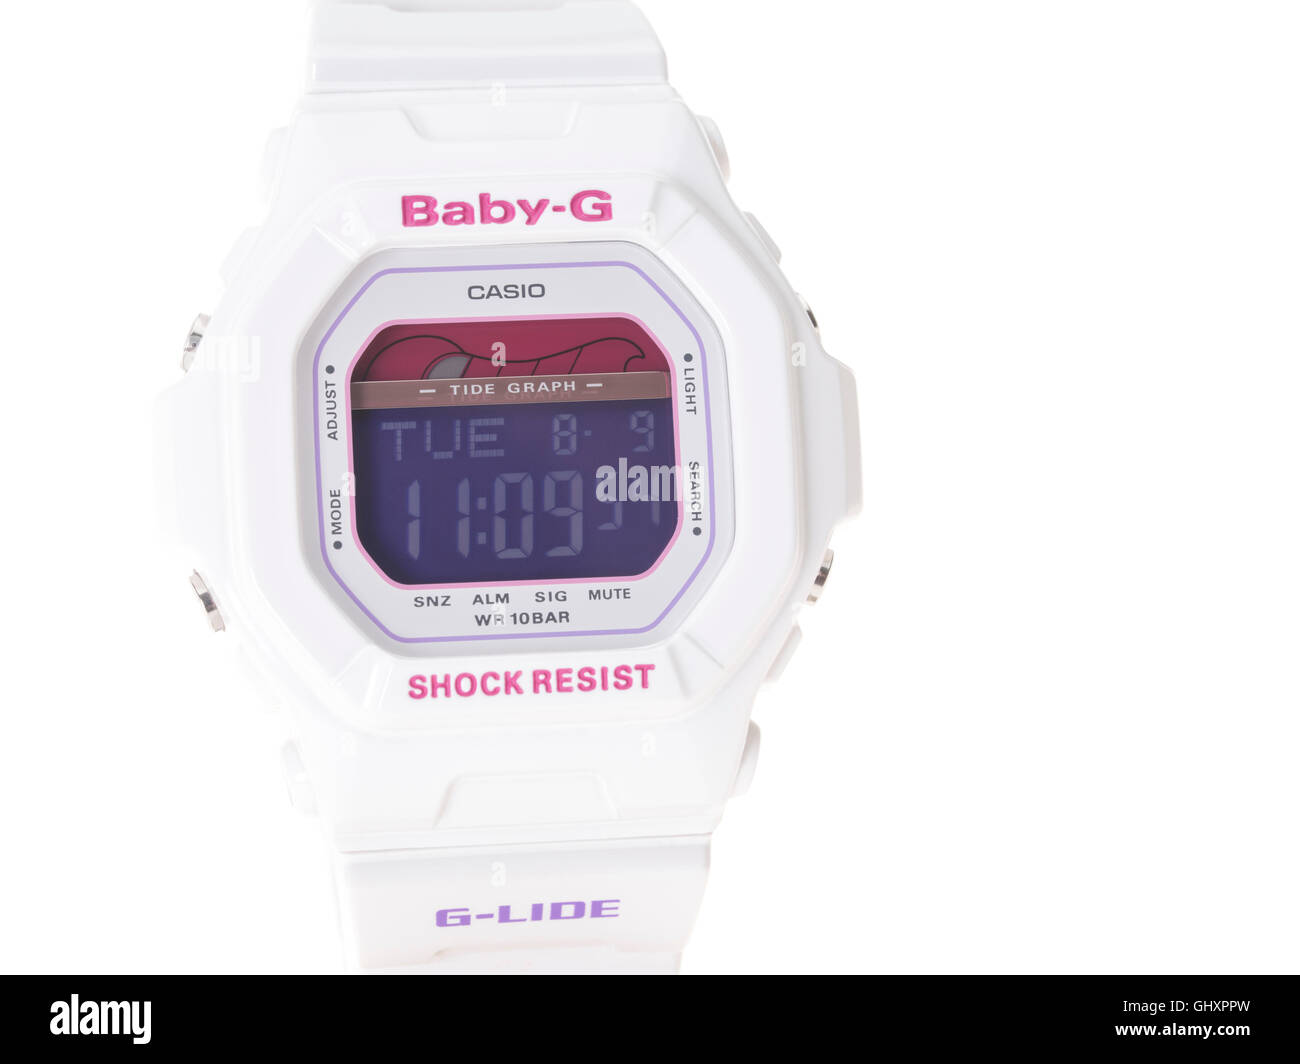 Casio Baby-G G-shock digital sports watch with tide graph - Stock Image